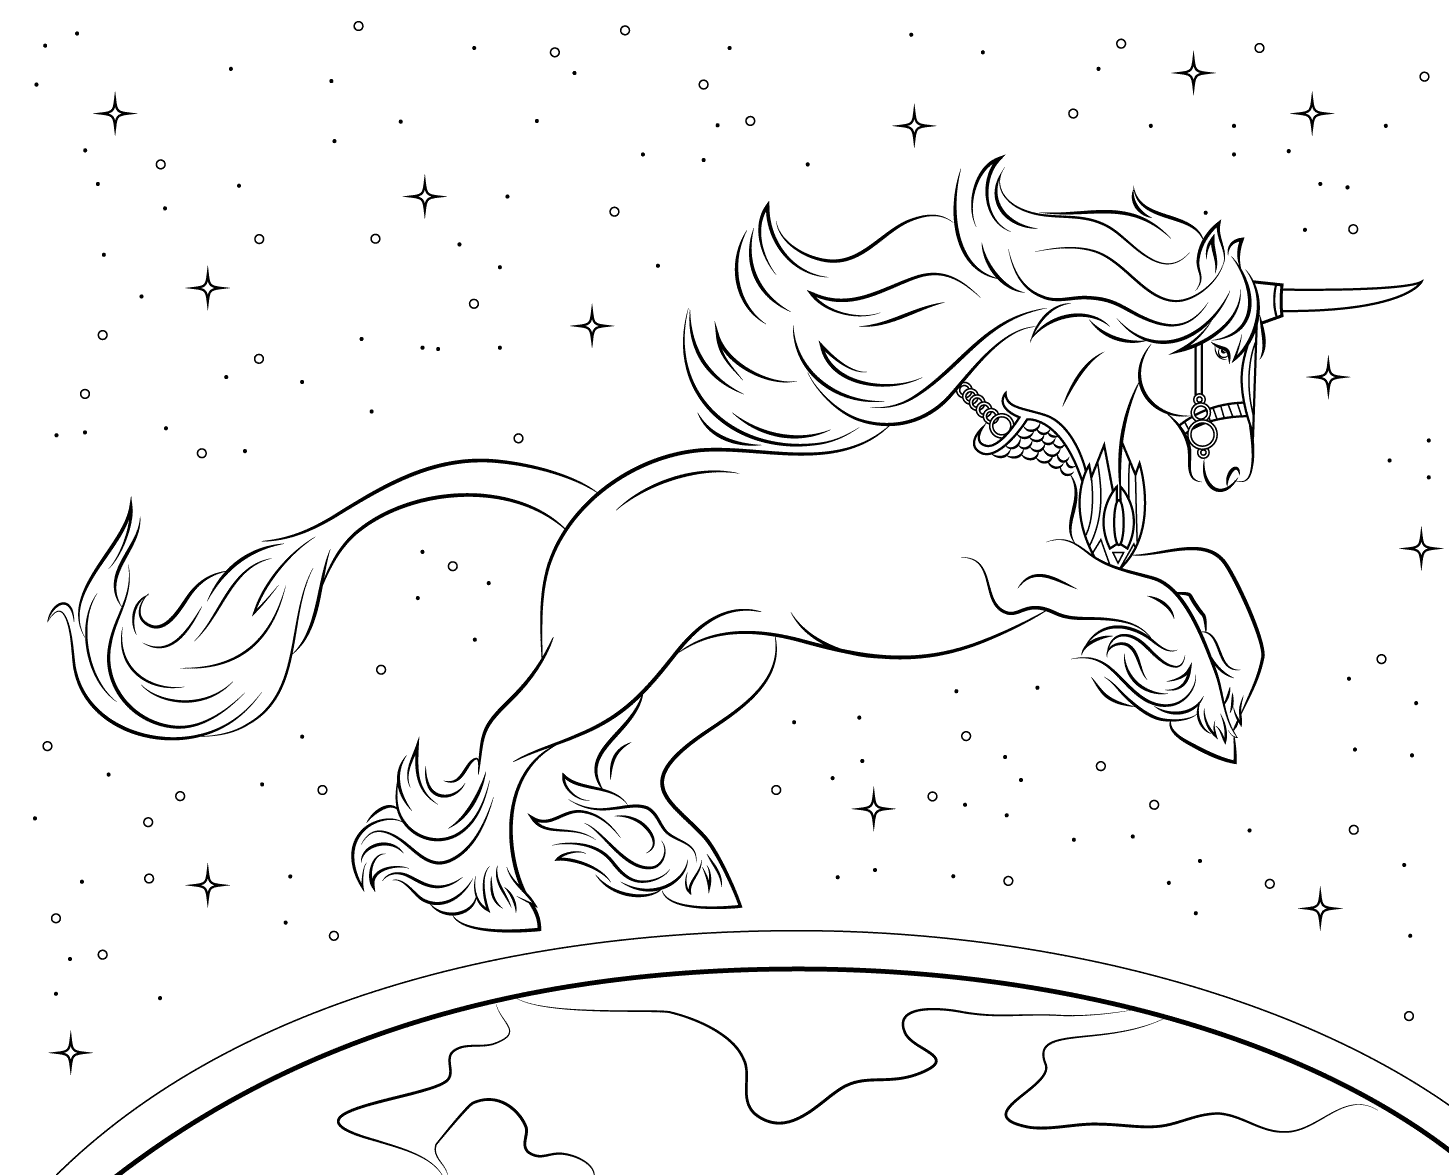 Unicorn Coloring Pages for Adults - Best Coloring Pages For Kids